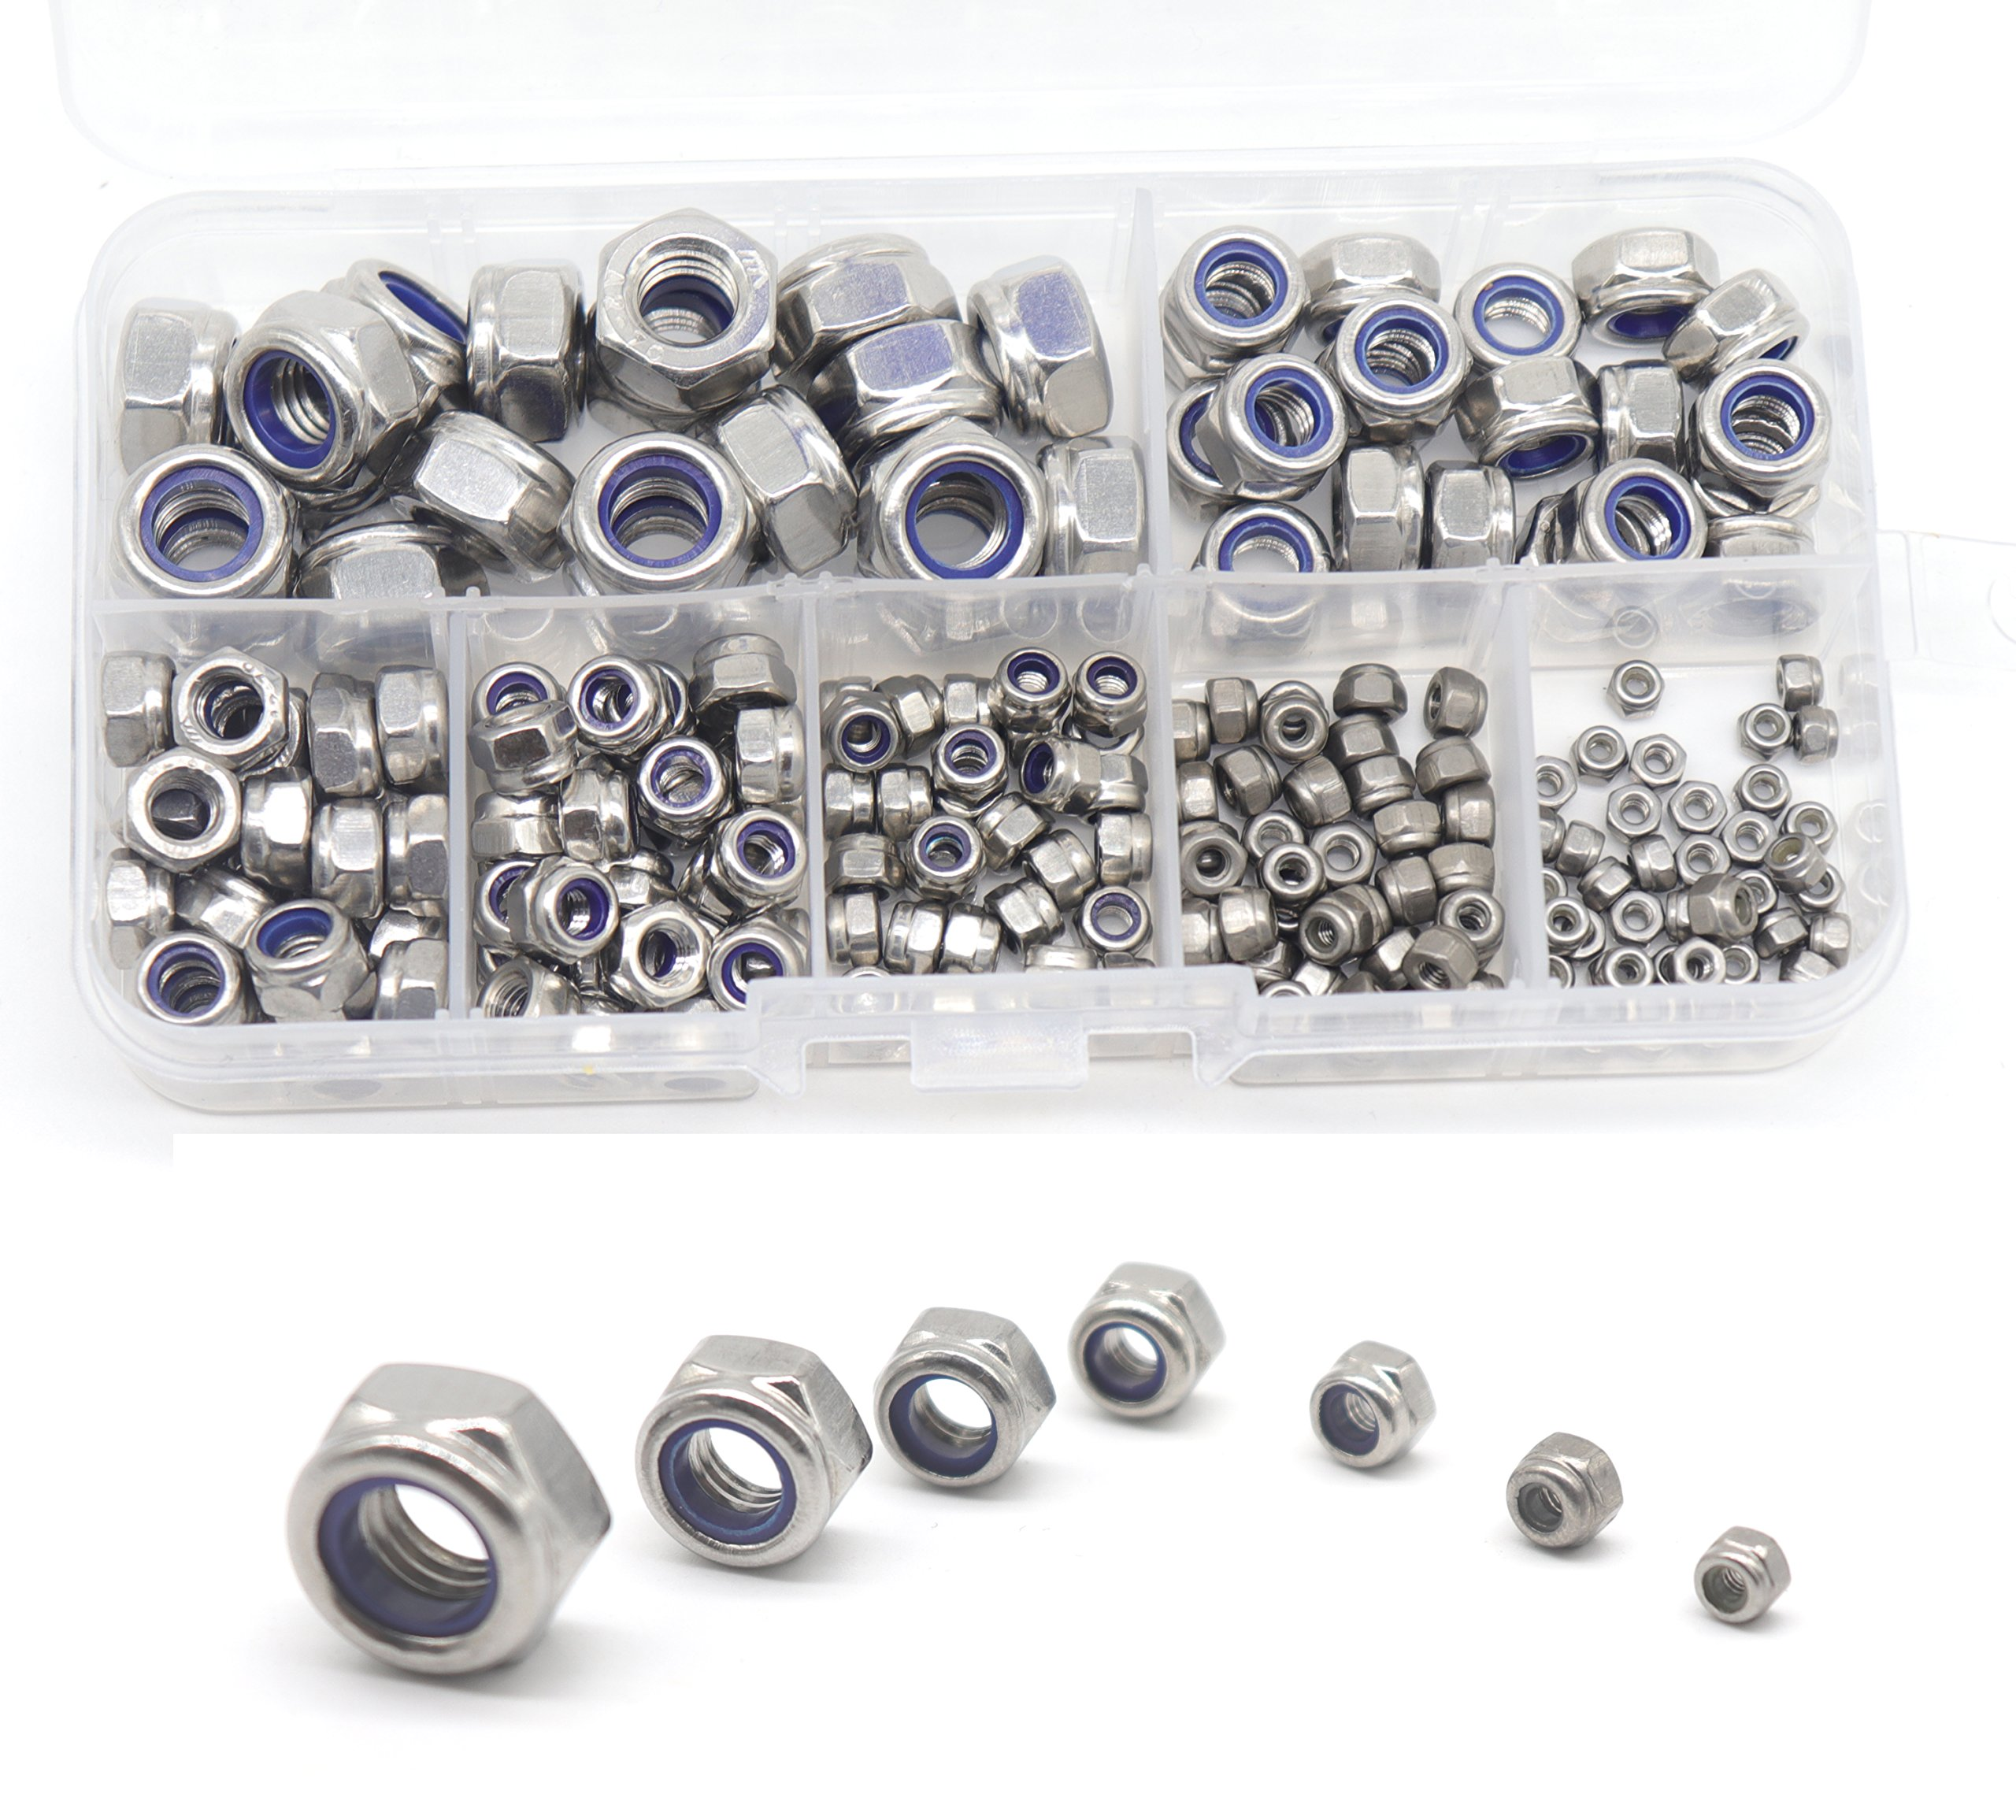 cSeao 210pcs Nylock Hex Self Locking Nuts Assortment Kit, Nylon Inserted Nuts, 304 Stainless Steel, Self Clinching Nuts